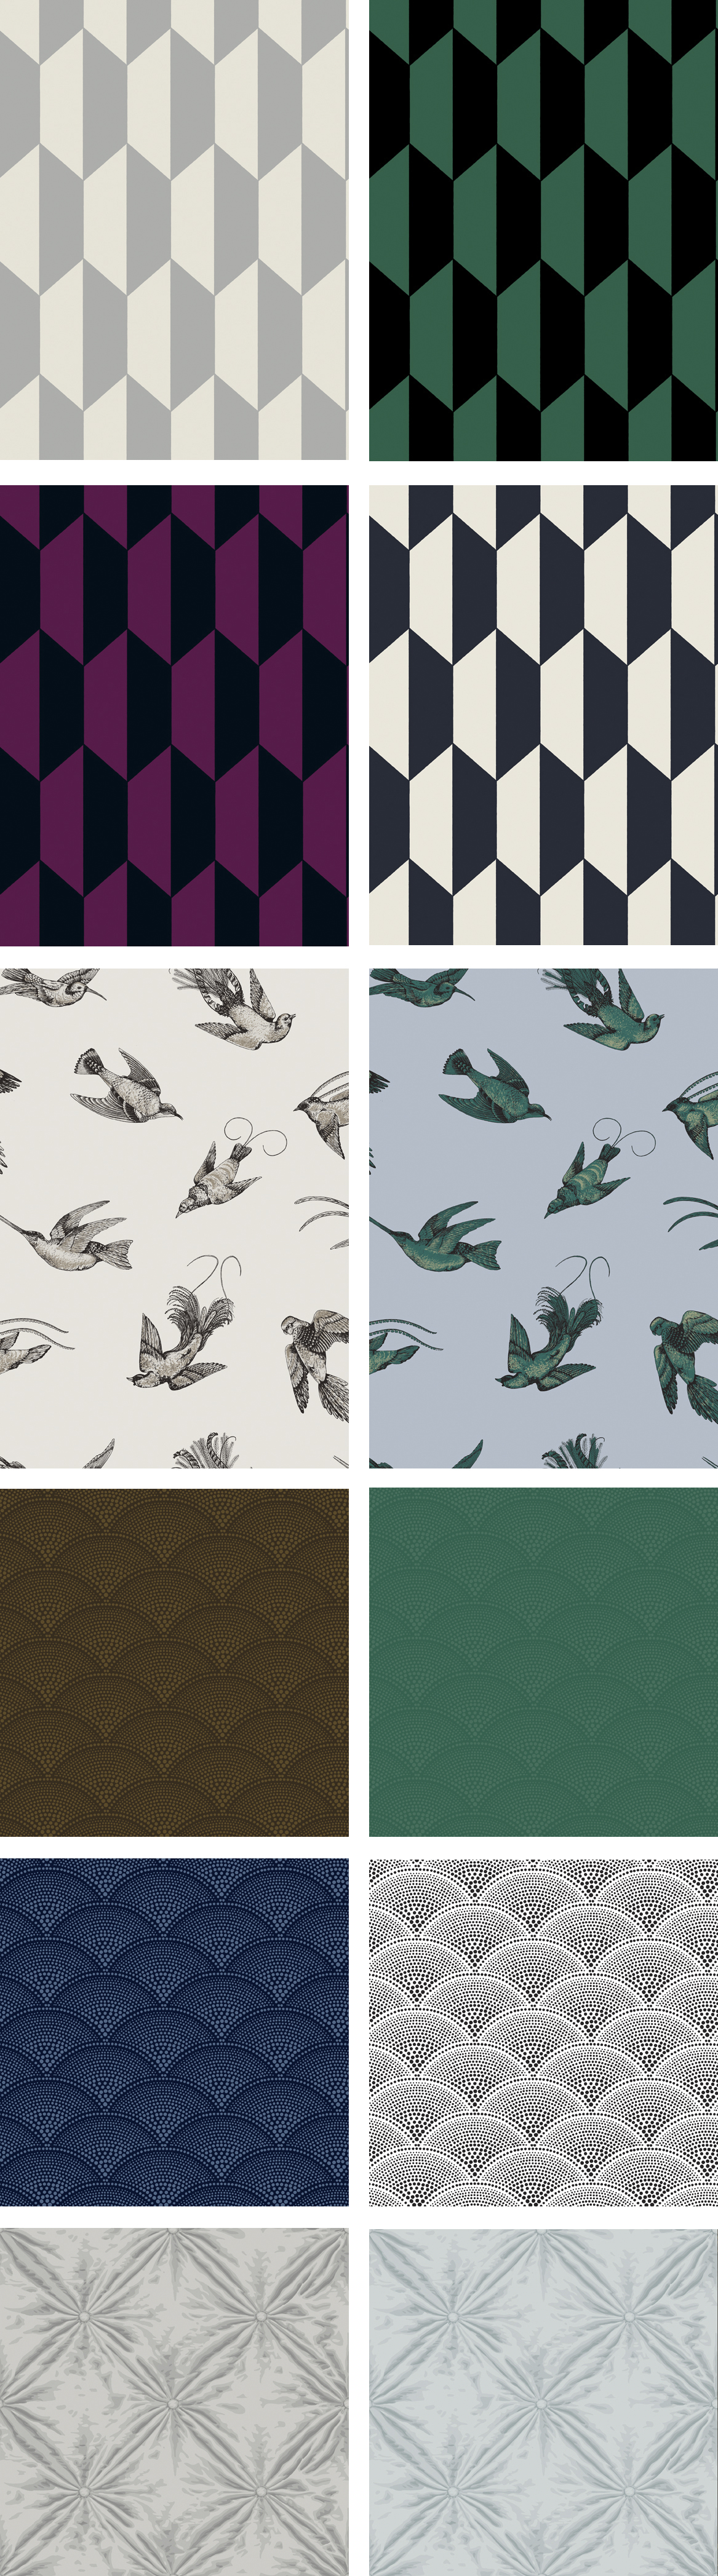 NEW: Cole & Son wallpapers « HomeShoppingSpy